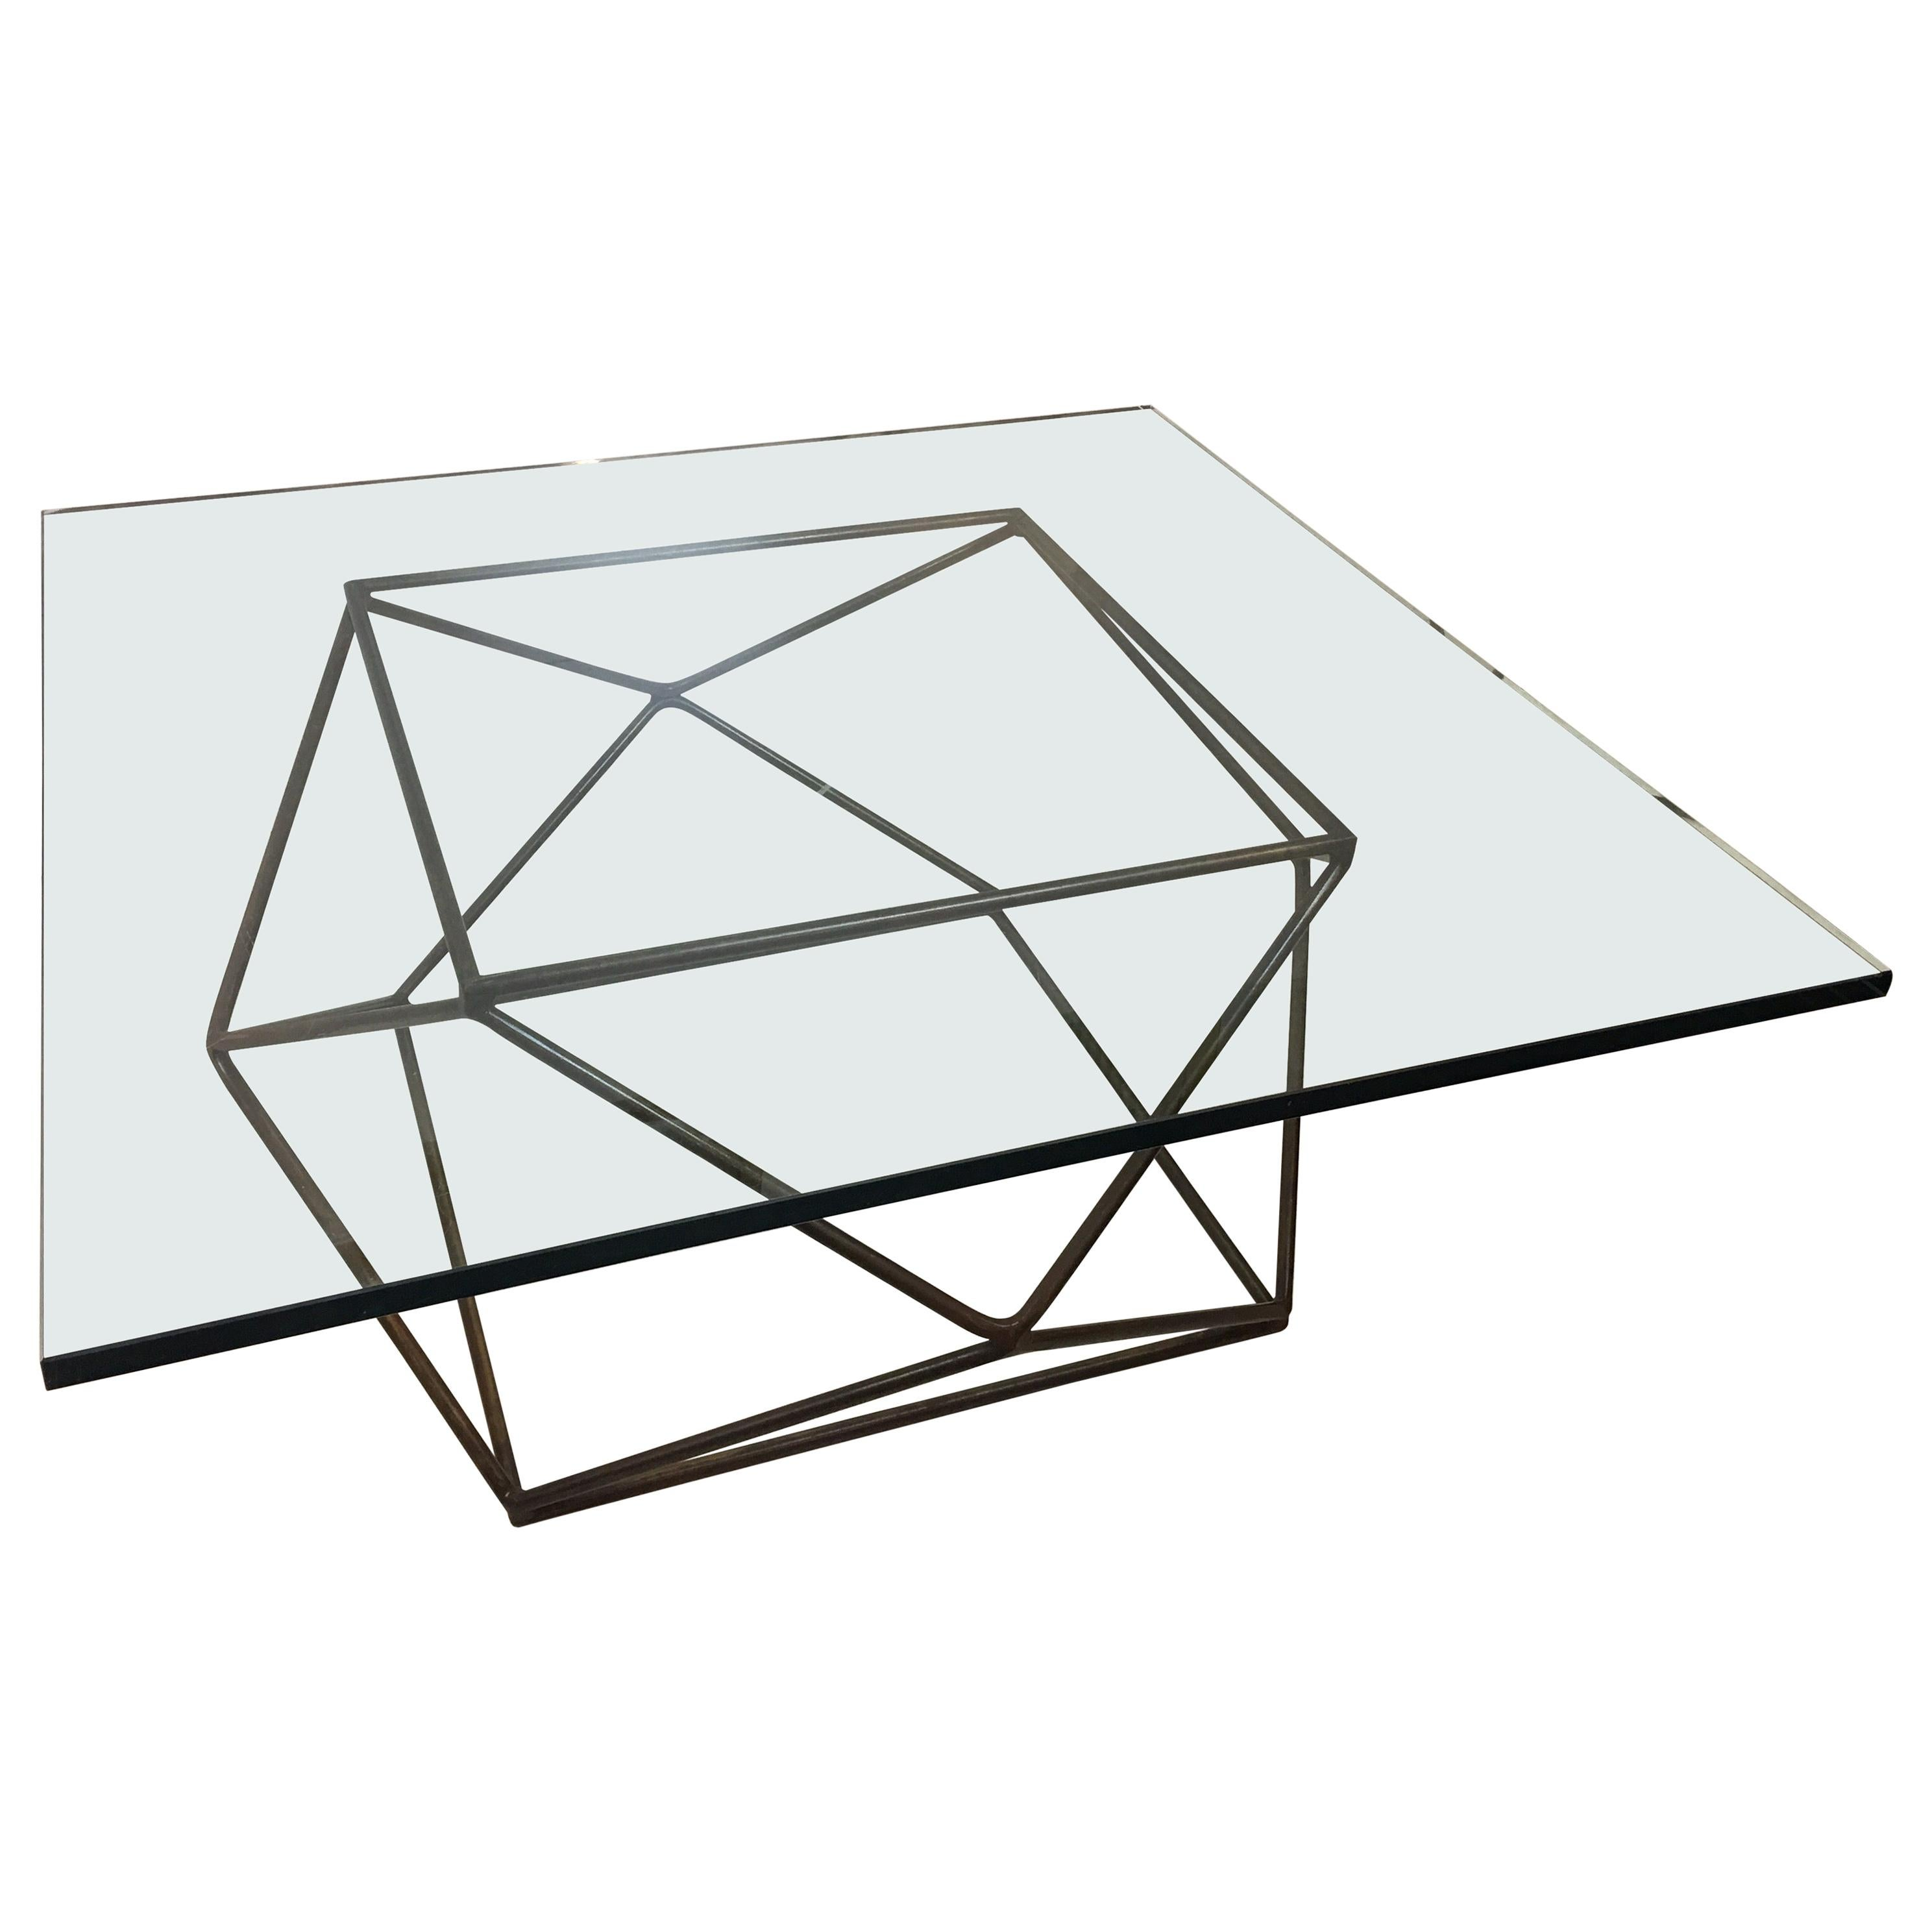 Milo Baughman for Directional Geodesic Bronzed Steel Coffee Table